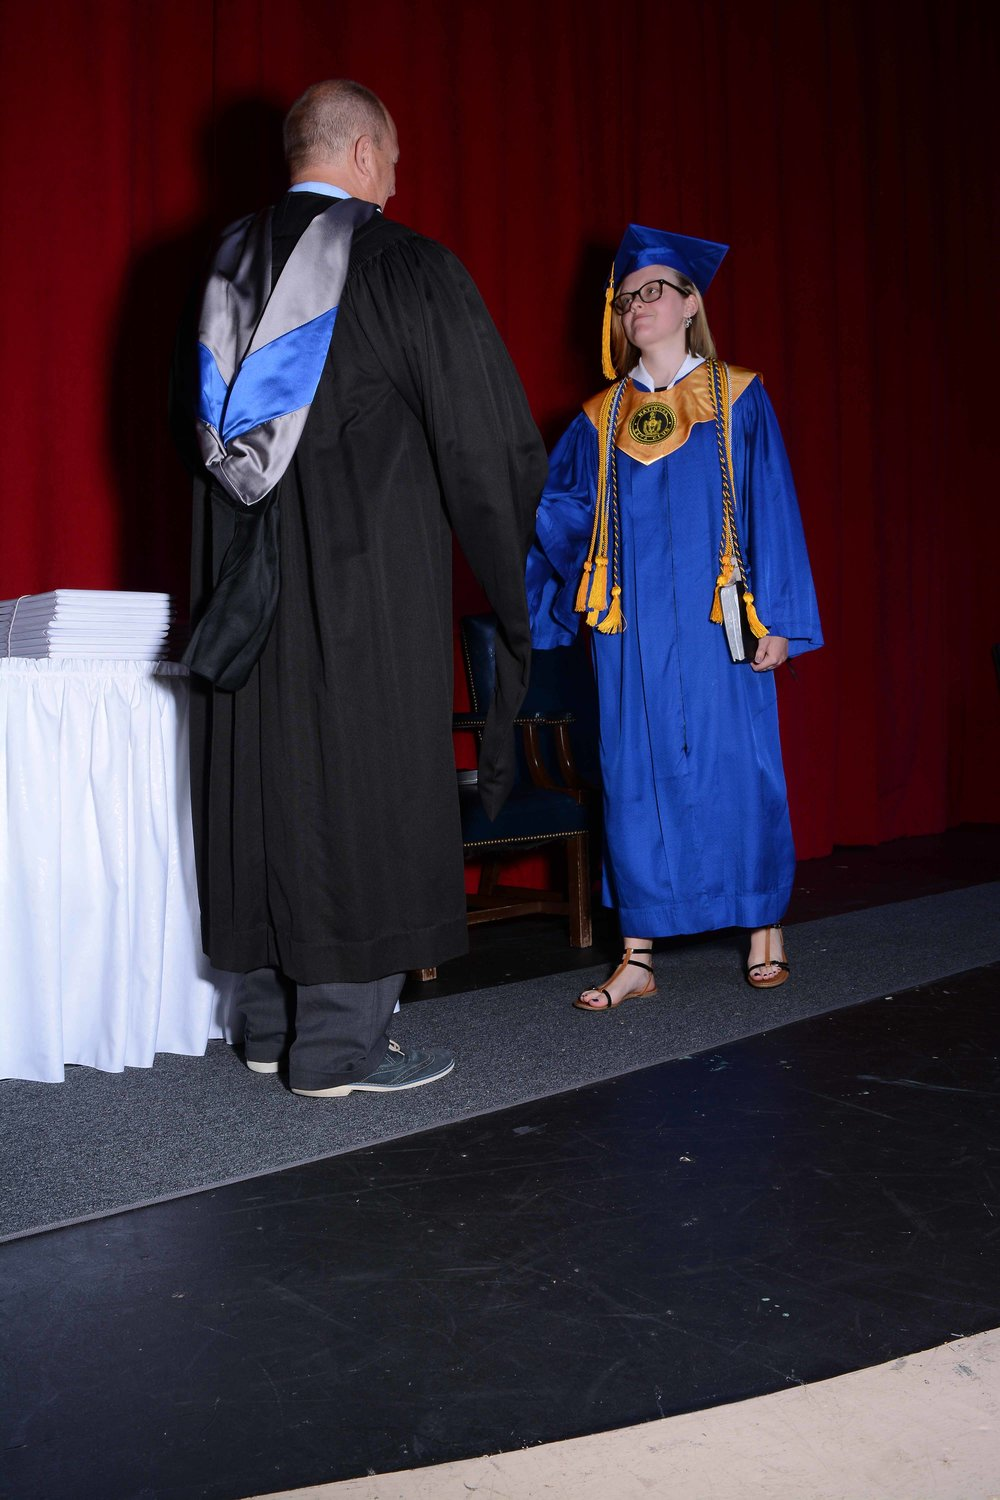 May14 Commencement29.jpg